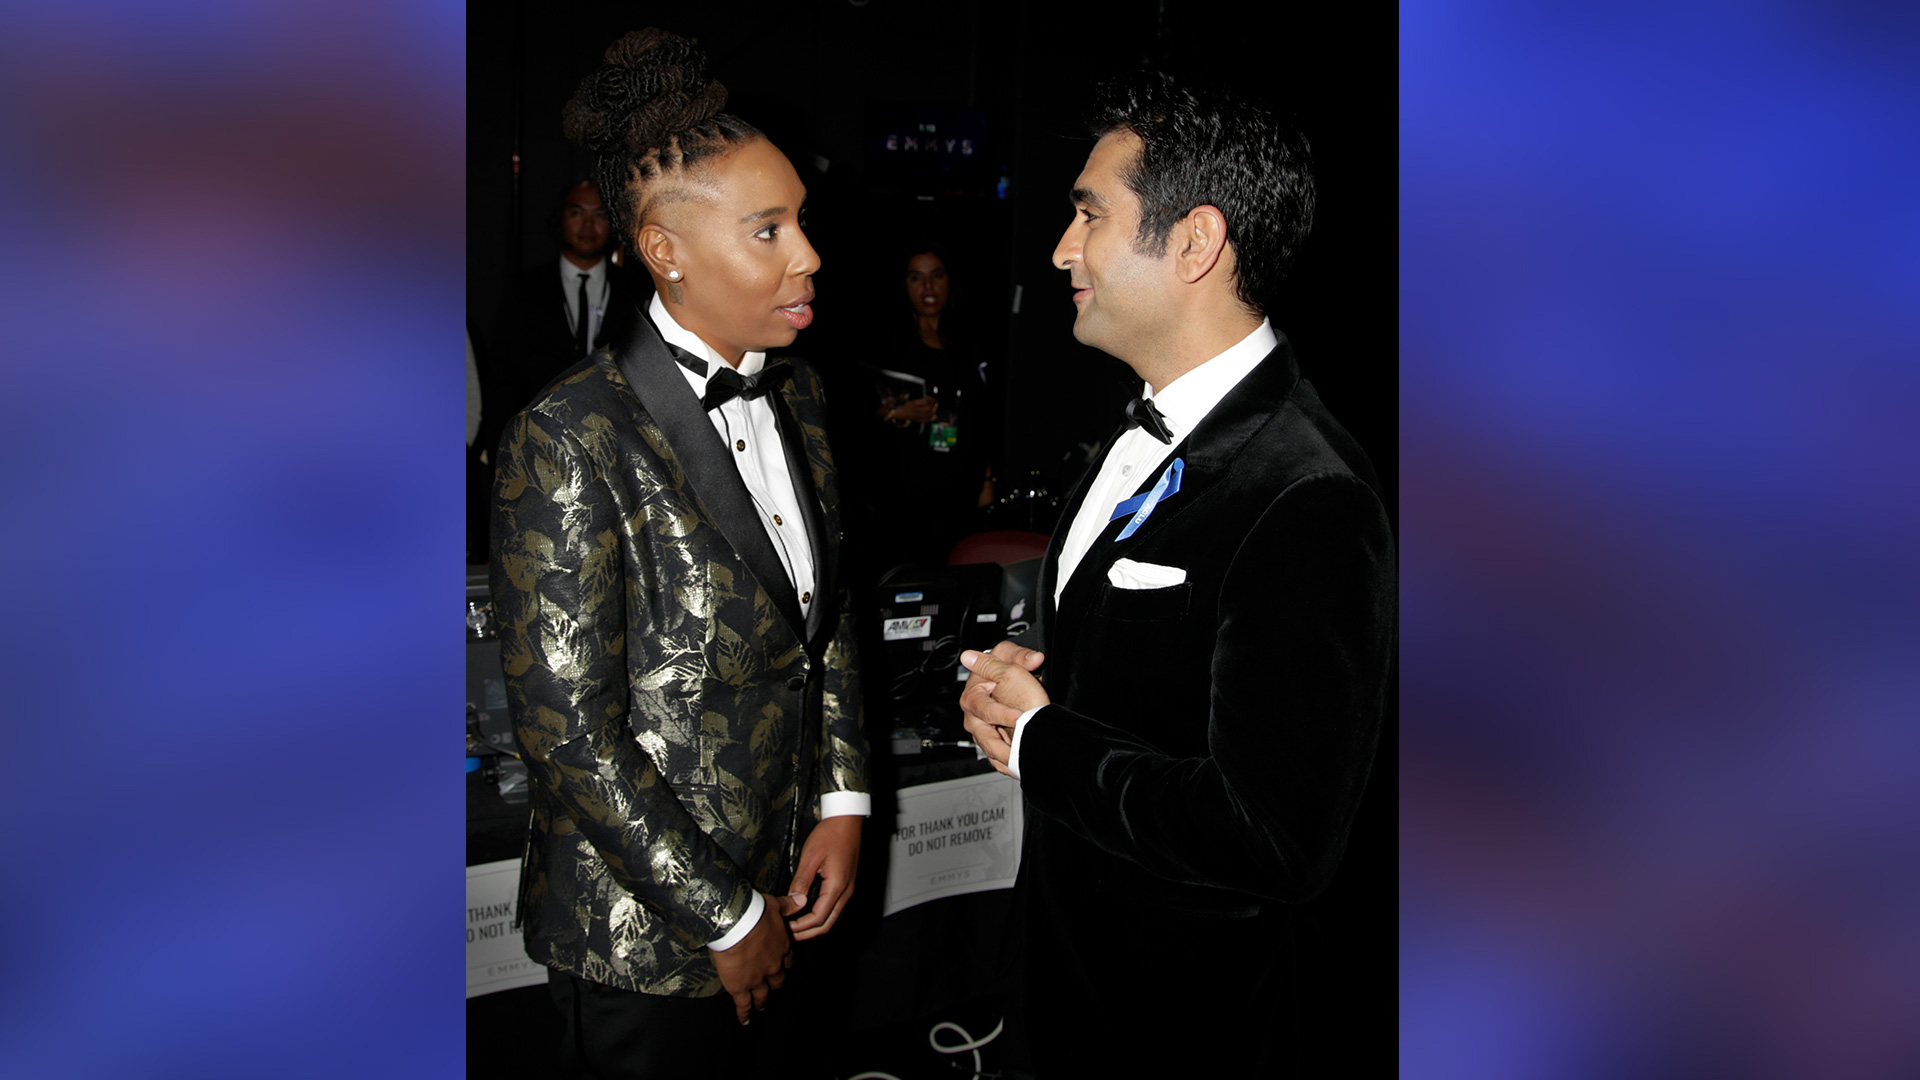 Emmy Award winner Lena Waithe and Kumail Nanjiani have a conversation backstage at the Emmys.